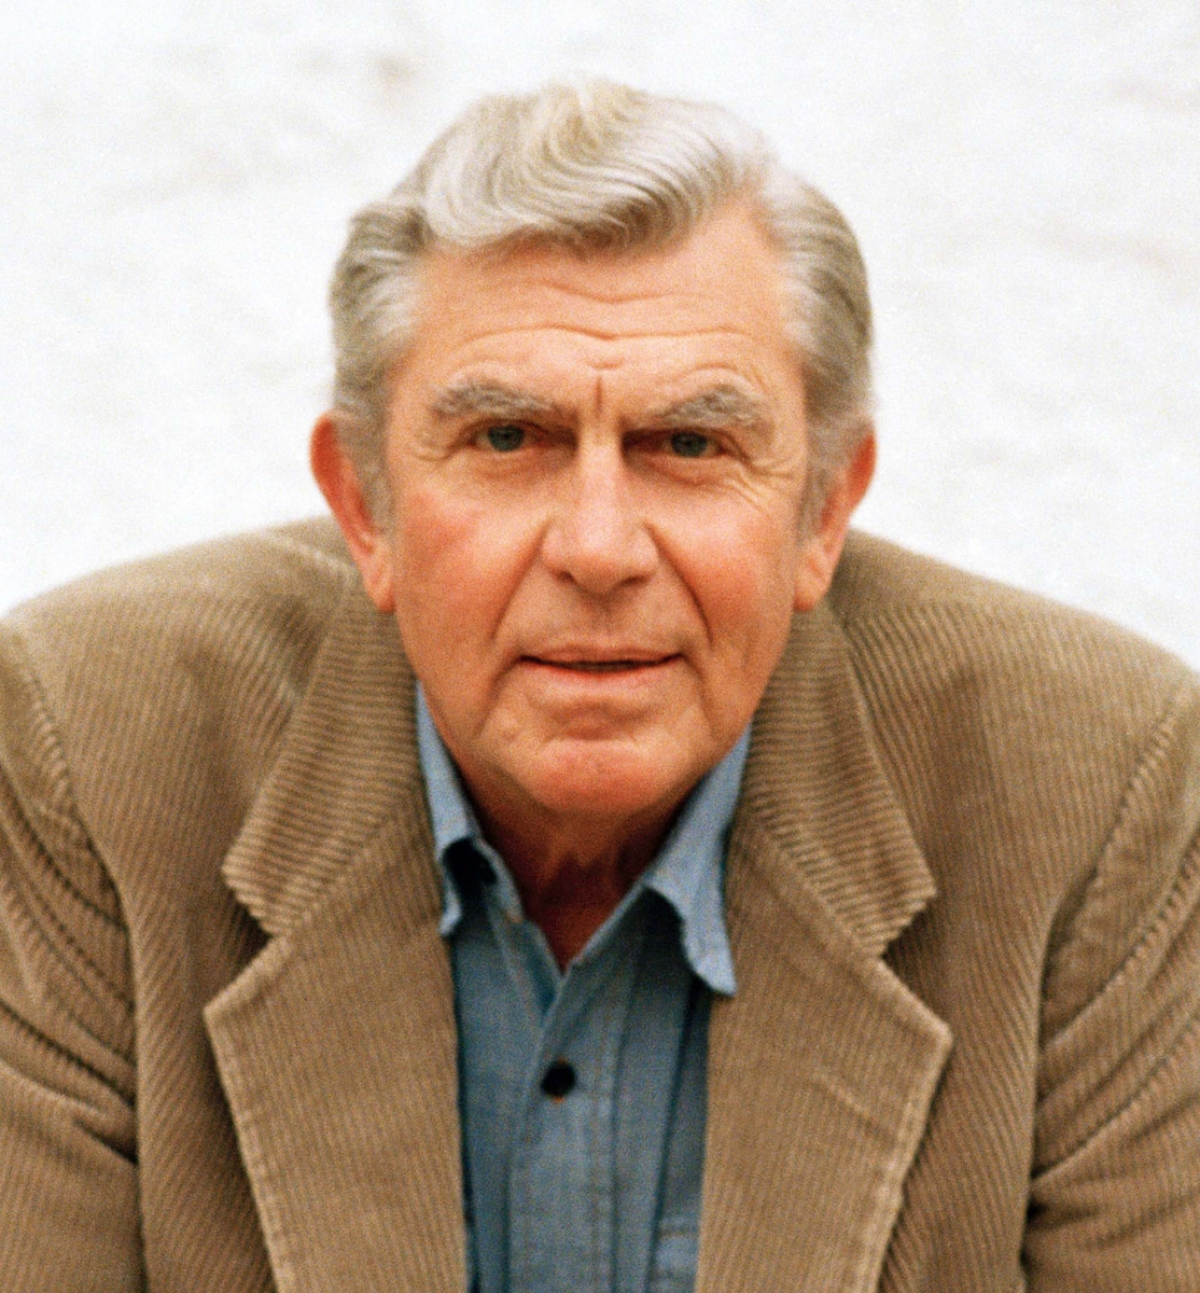 "Born in Mount Airy, North Carolina, Andy Griffith brought attention to the people, heritage, culture and music of western North Carolina through his television, broadway and big-screen roles.  Andy was an actor, television producer, Grammy-Award winning Southern gospel singer and a writer.  He sang as part of some of his acting roles, most notably in ""A Face in the Crowd"" and in many episodes of ""The Andy Griffith Show"" and ""Matlock"".  Throughout the course of his career, Andy Griffith recorded over twenty albums ranging from gospel to country to story monologues in addition to his acting and broadway roles."